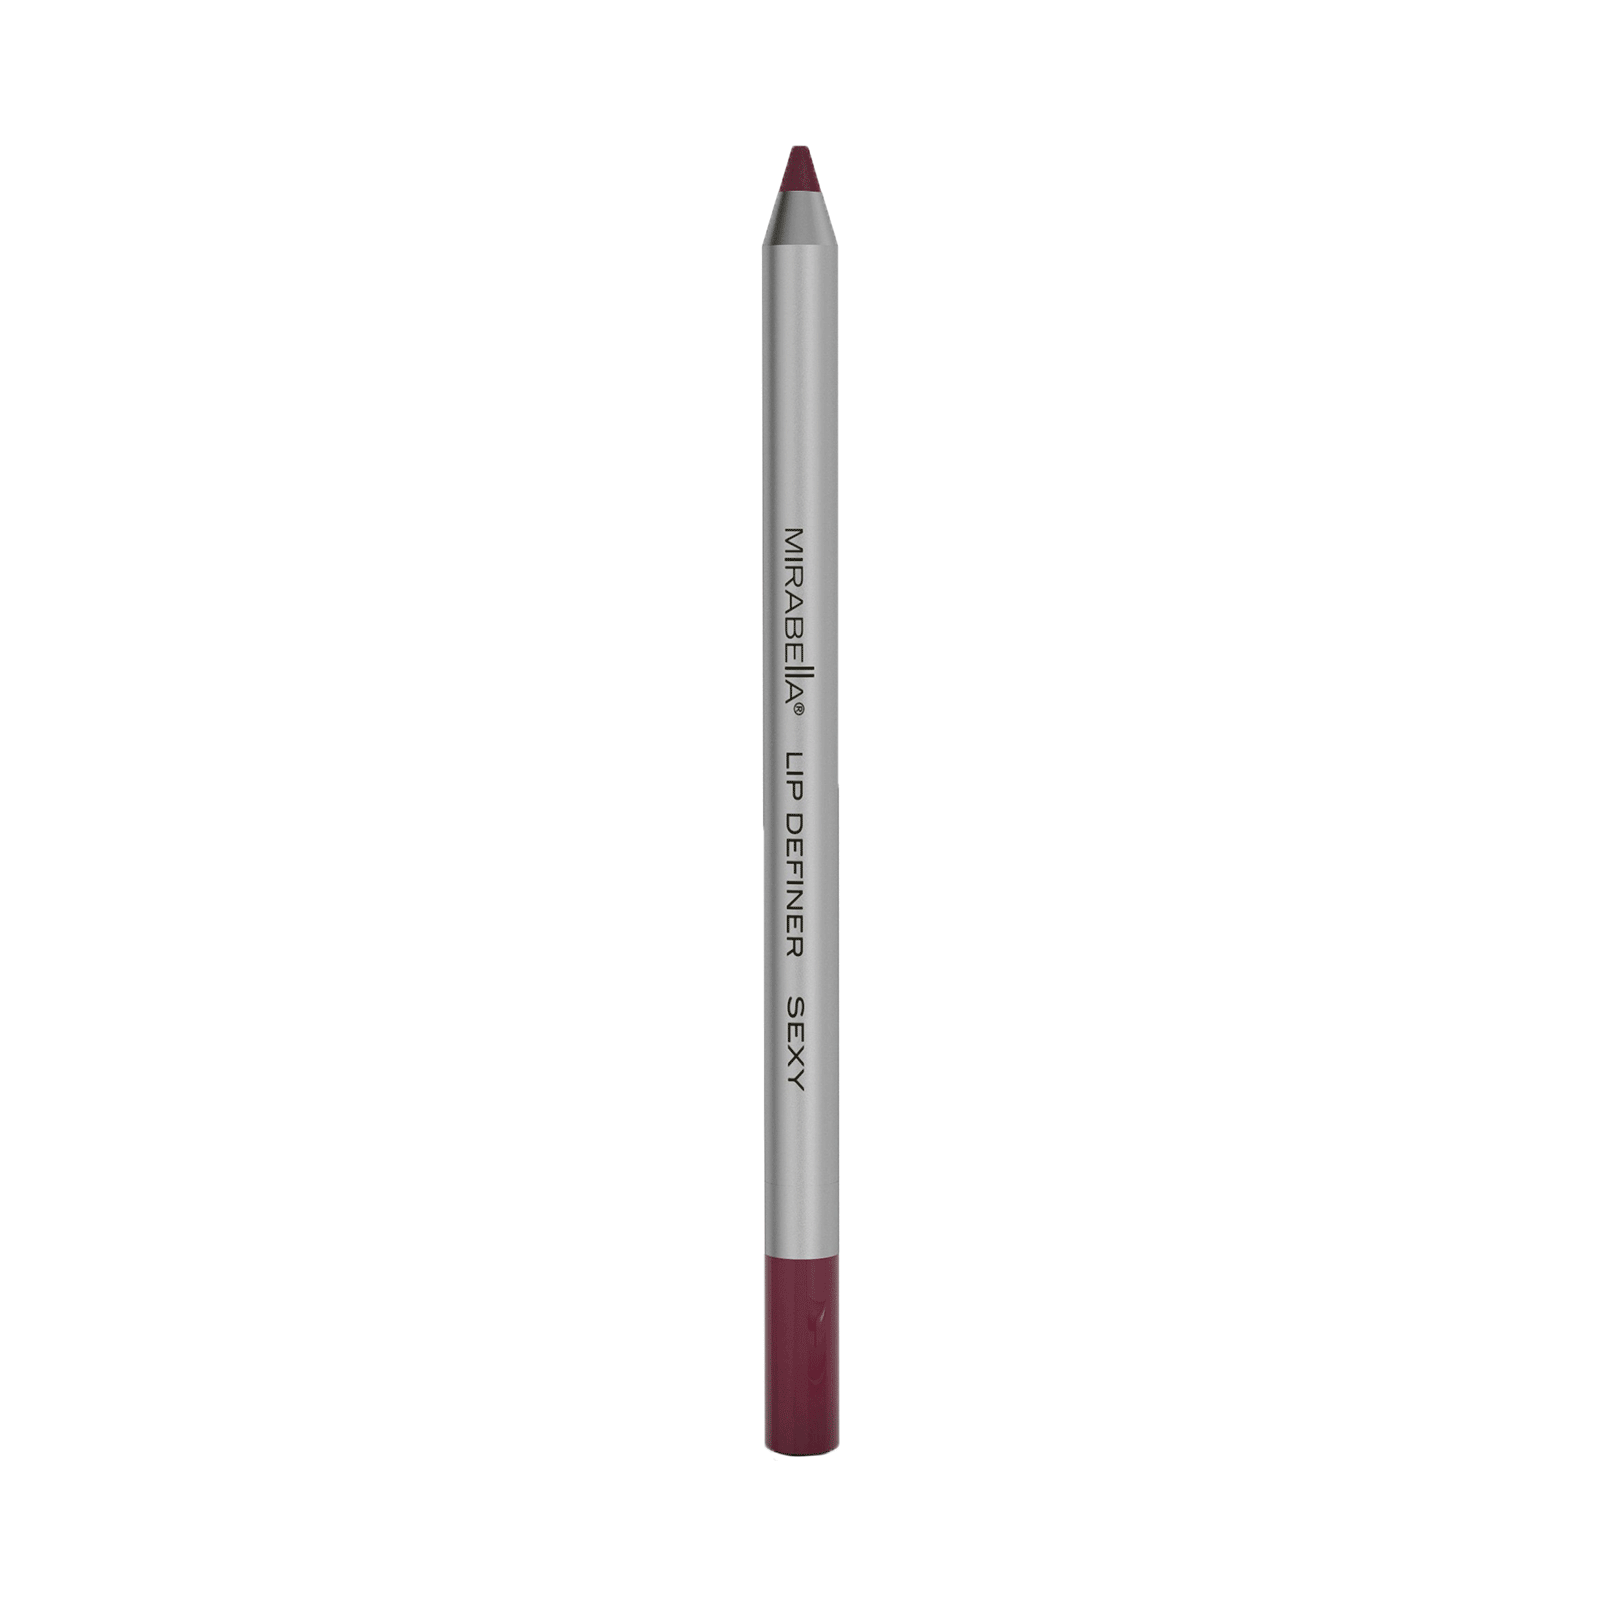 Line and Define Retractable Lip Definer